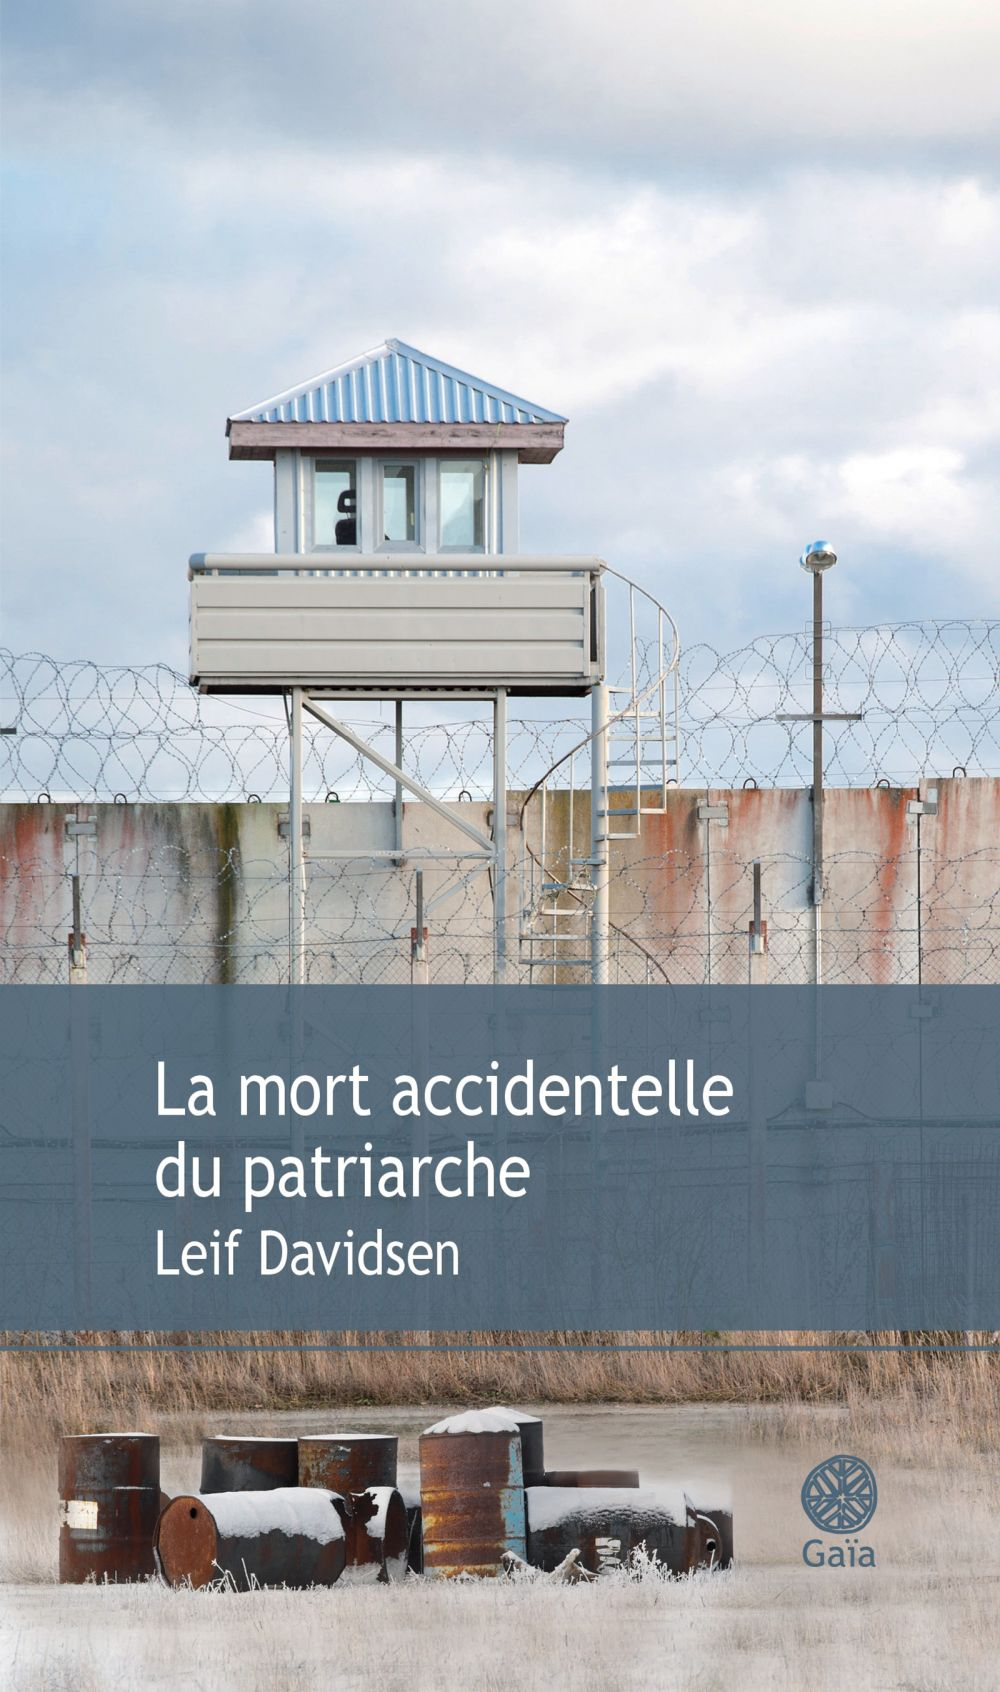 La mort accidentelle du patriarche